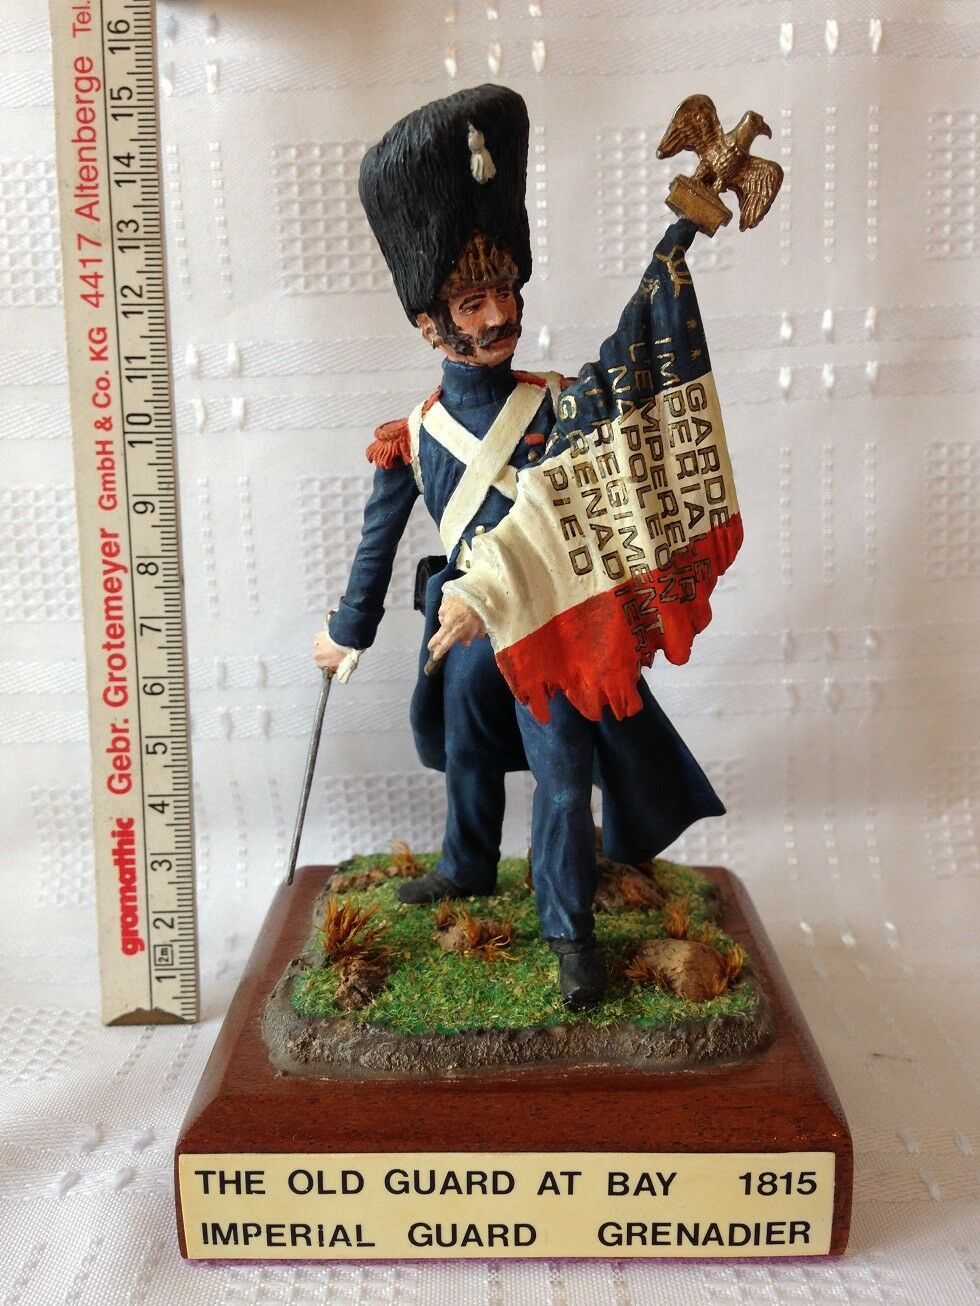 Imperial Guard Grenadier 1815. The Old Guard At Bay. 120mm Die-Cast Figure.